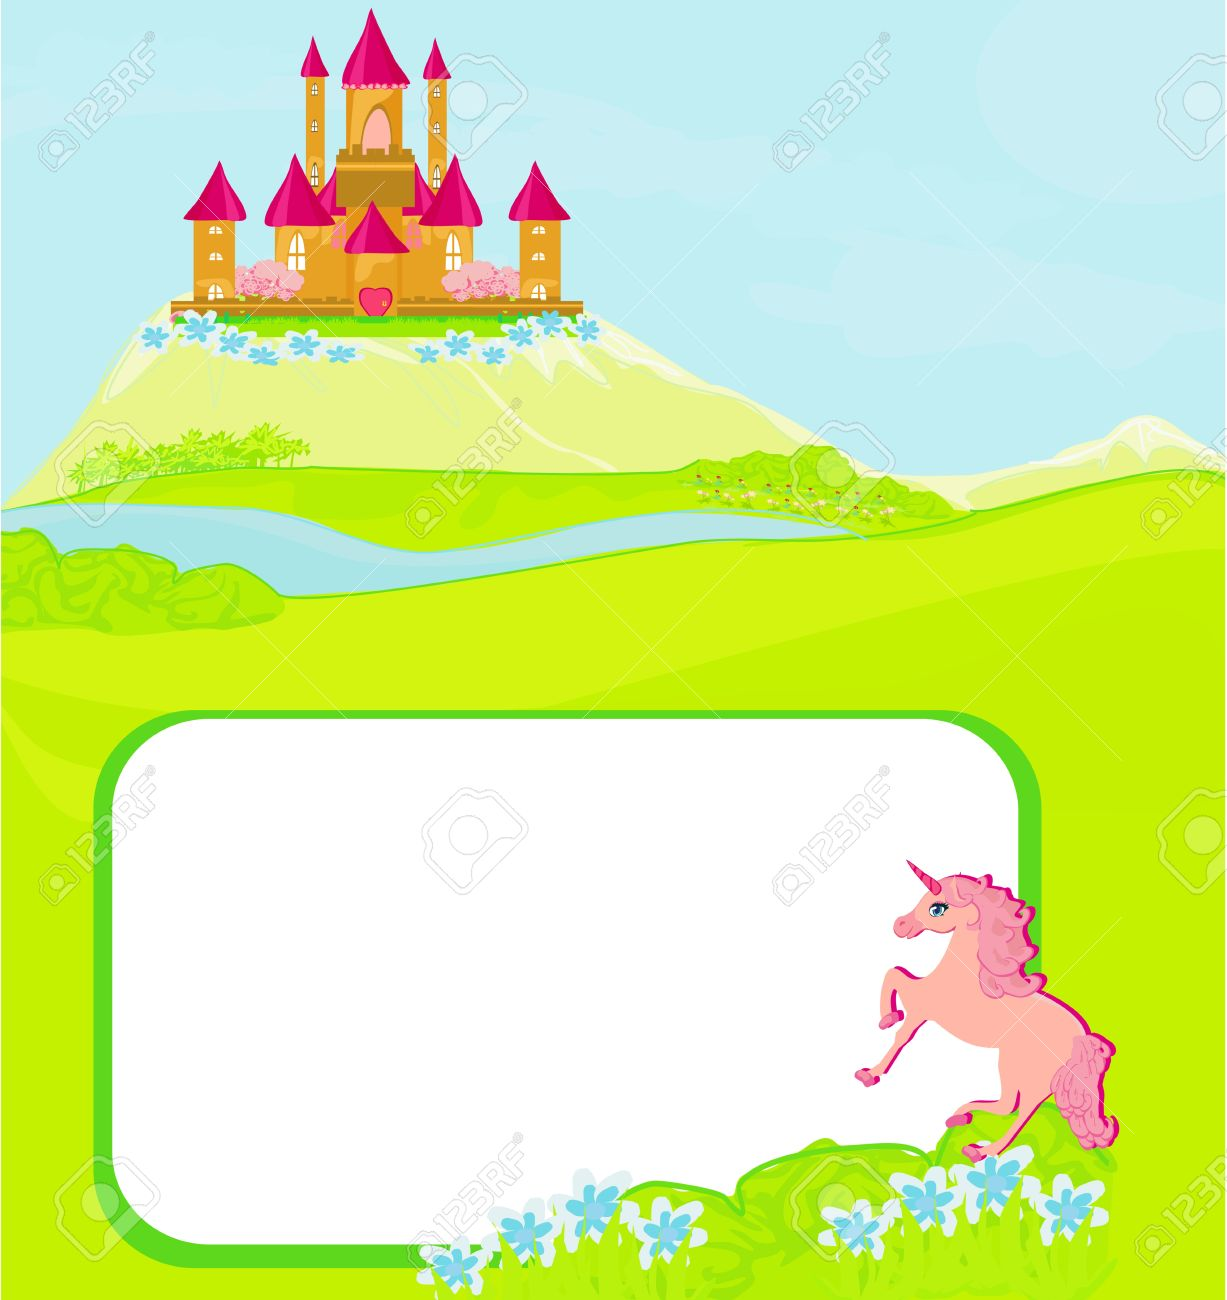 Portrait frame with fairy tale castle and beautiful country side landscape Stock Vector - 17935400